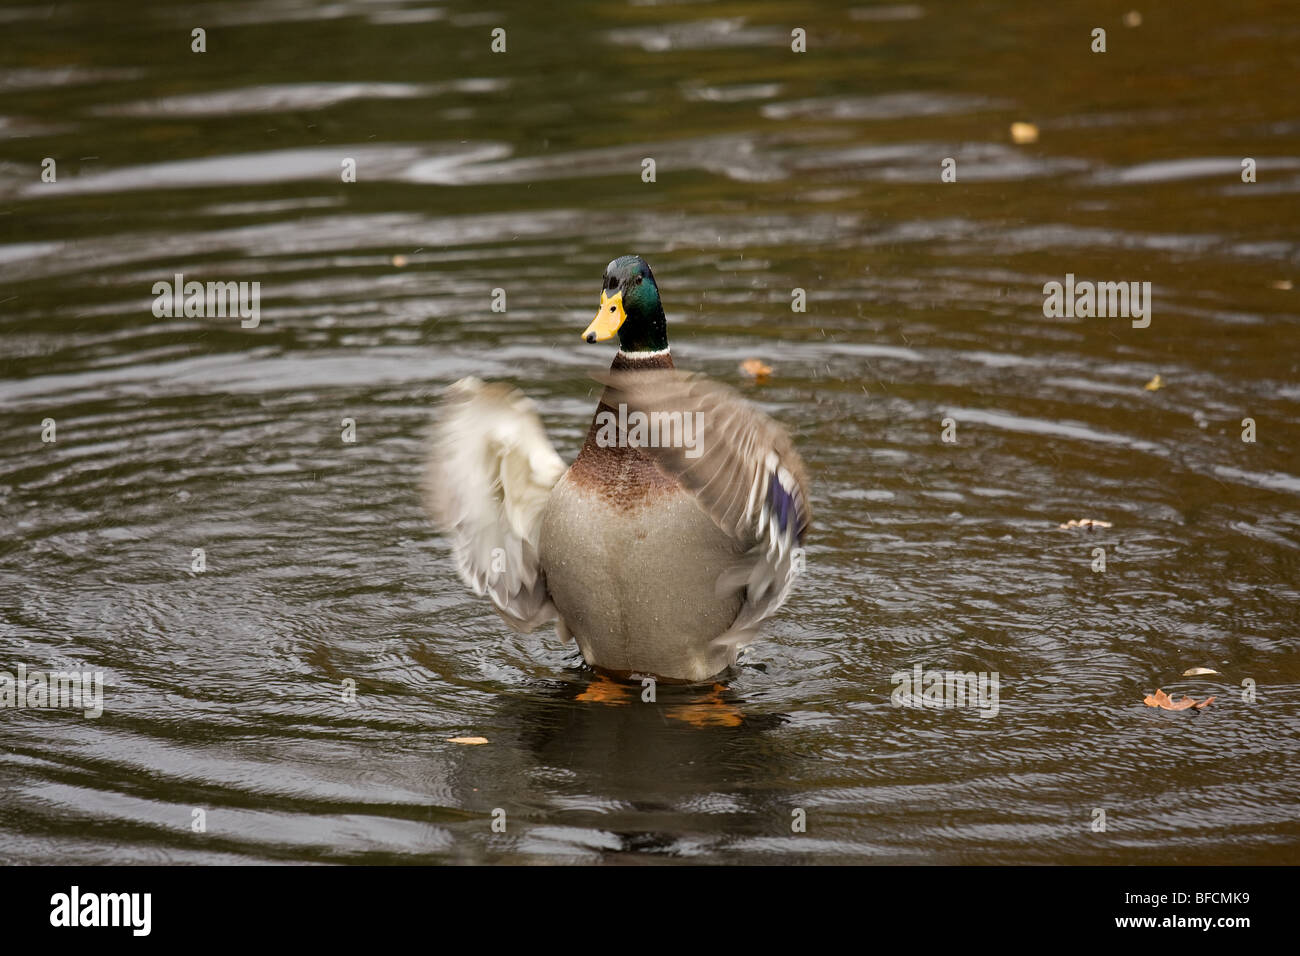 A Mallard flaps his wings to remove water as part of its grooming regimen. - Stock Image